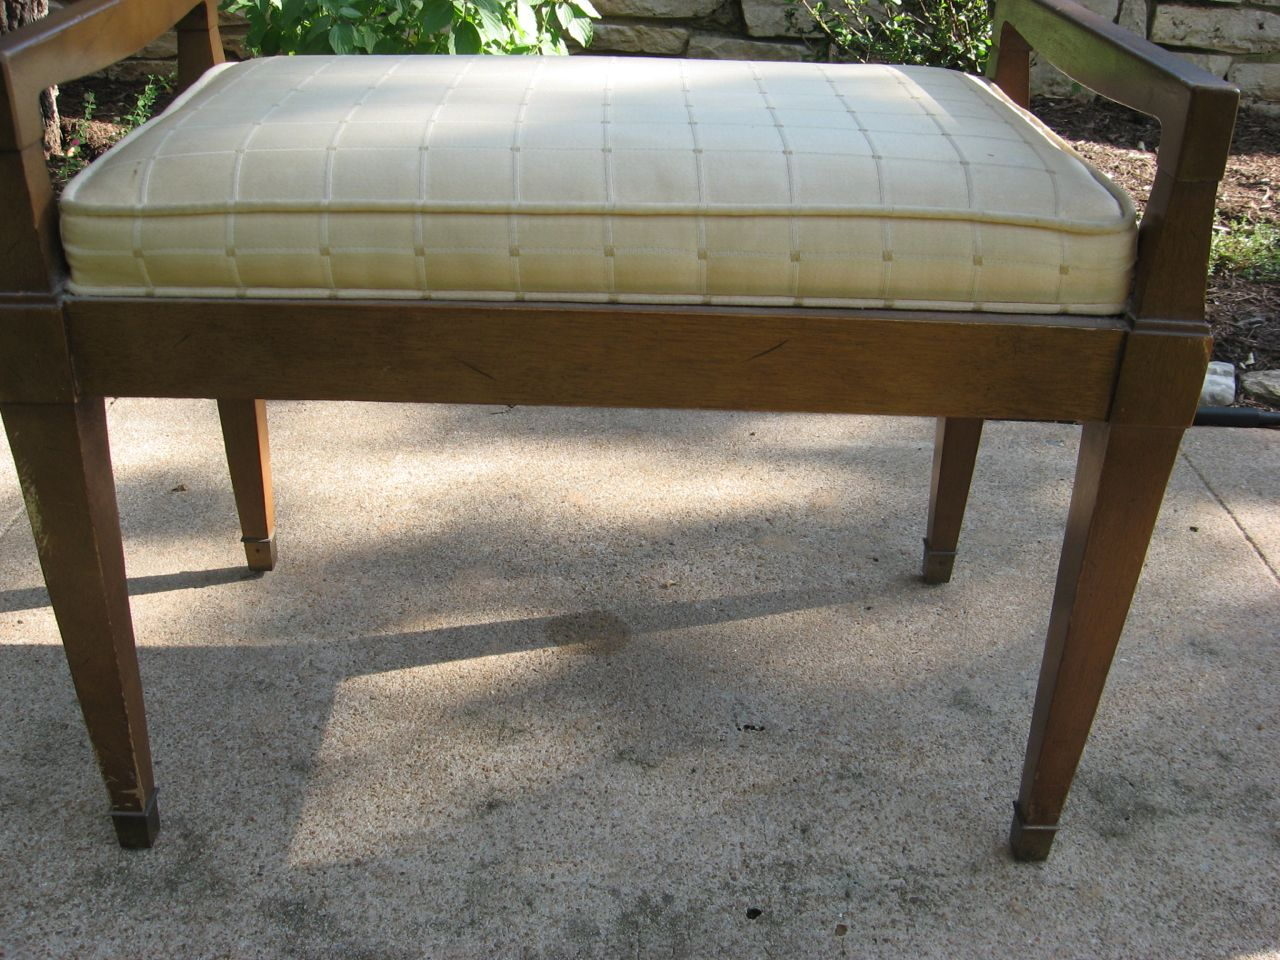 ... antique vanity bench from this: IMG_7847 - New Life For This Old Vanity Bench Around My Home